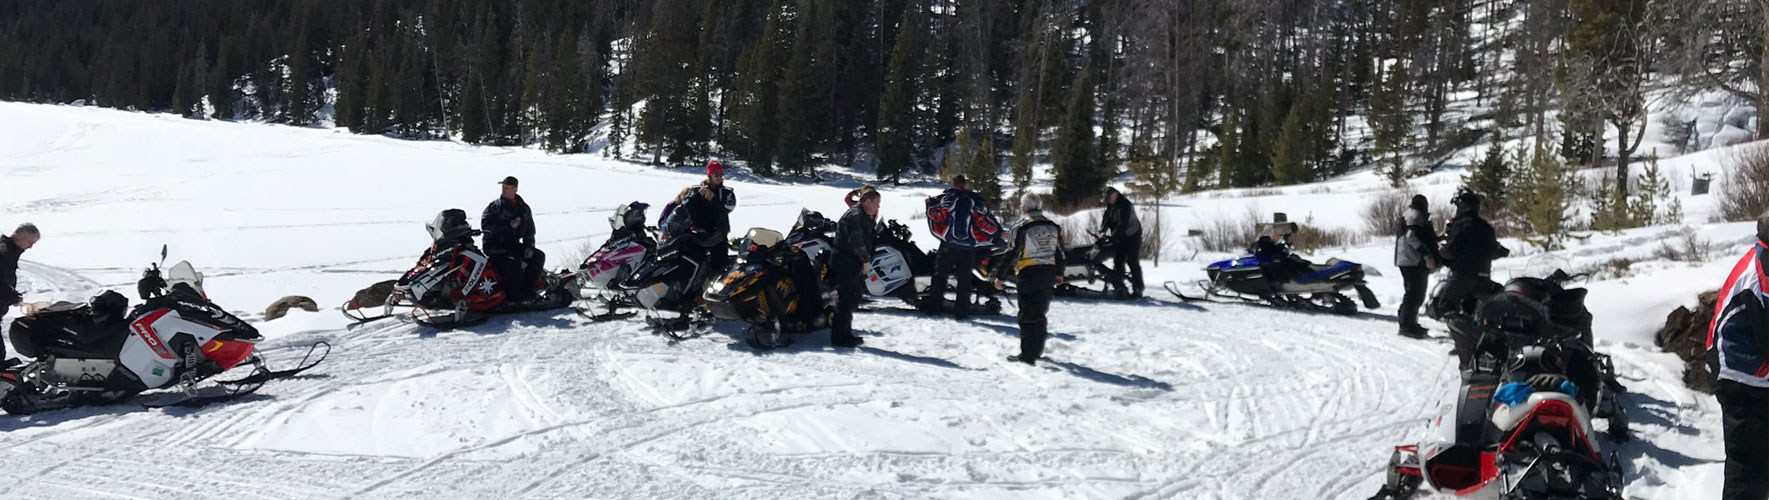 Plat5 Snowmobile Club Members